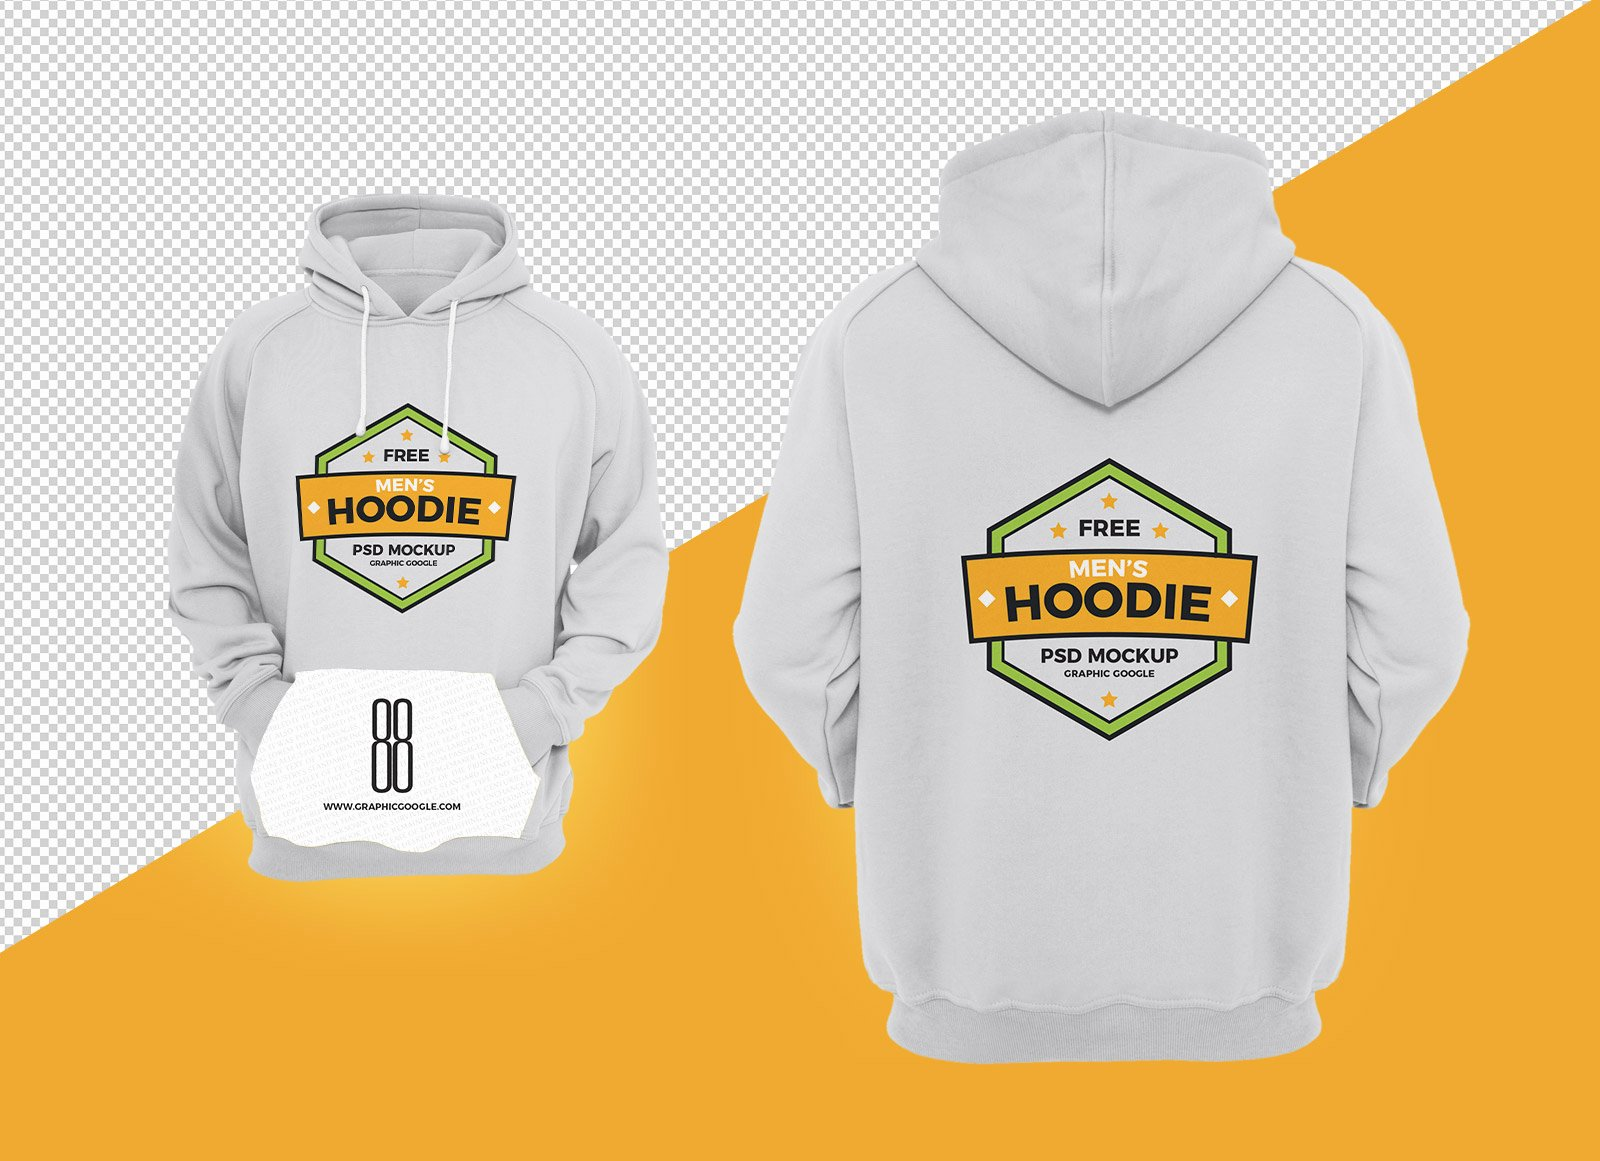 Free Hoodie Mockup Psd Unique Free Men S Hoo T Shirt Mockup Psd File Good Mockups